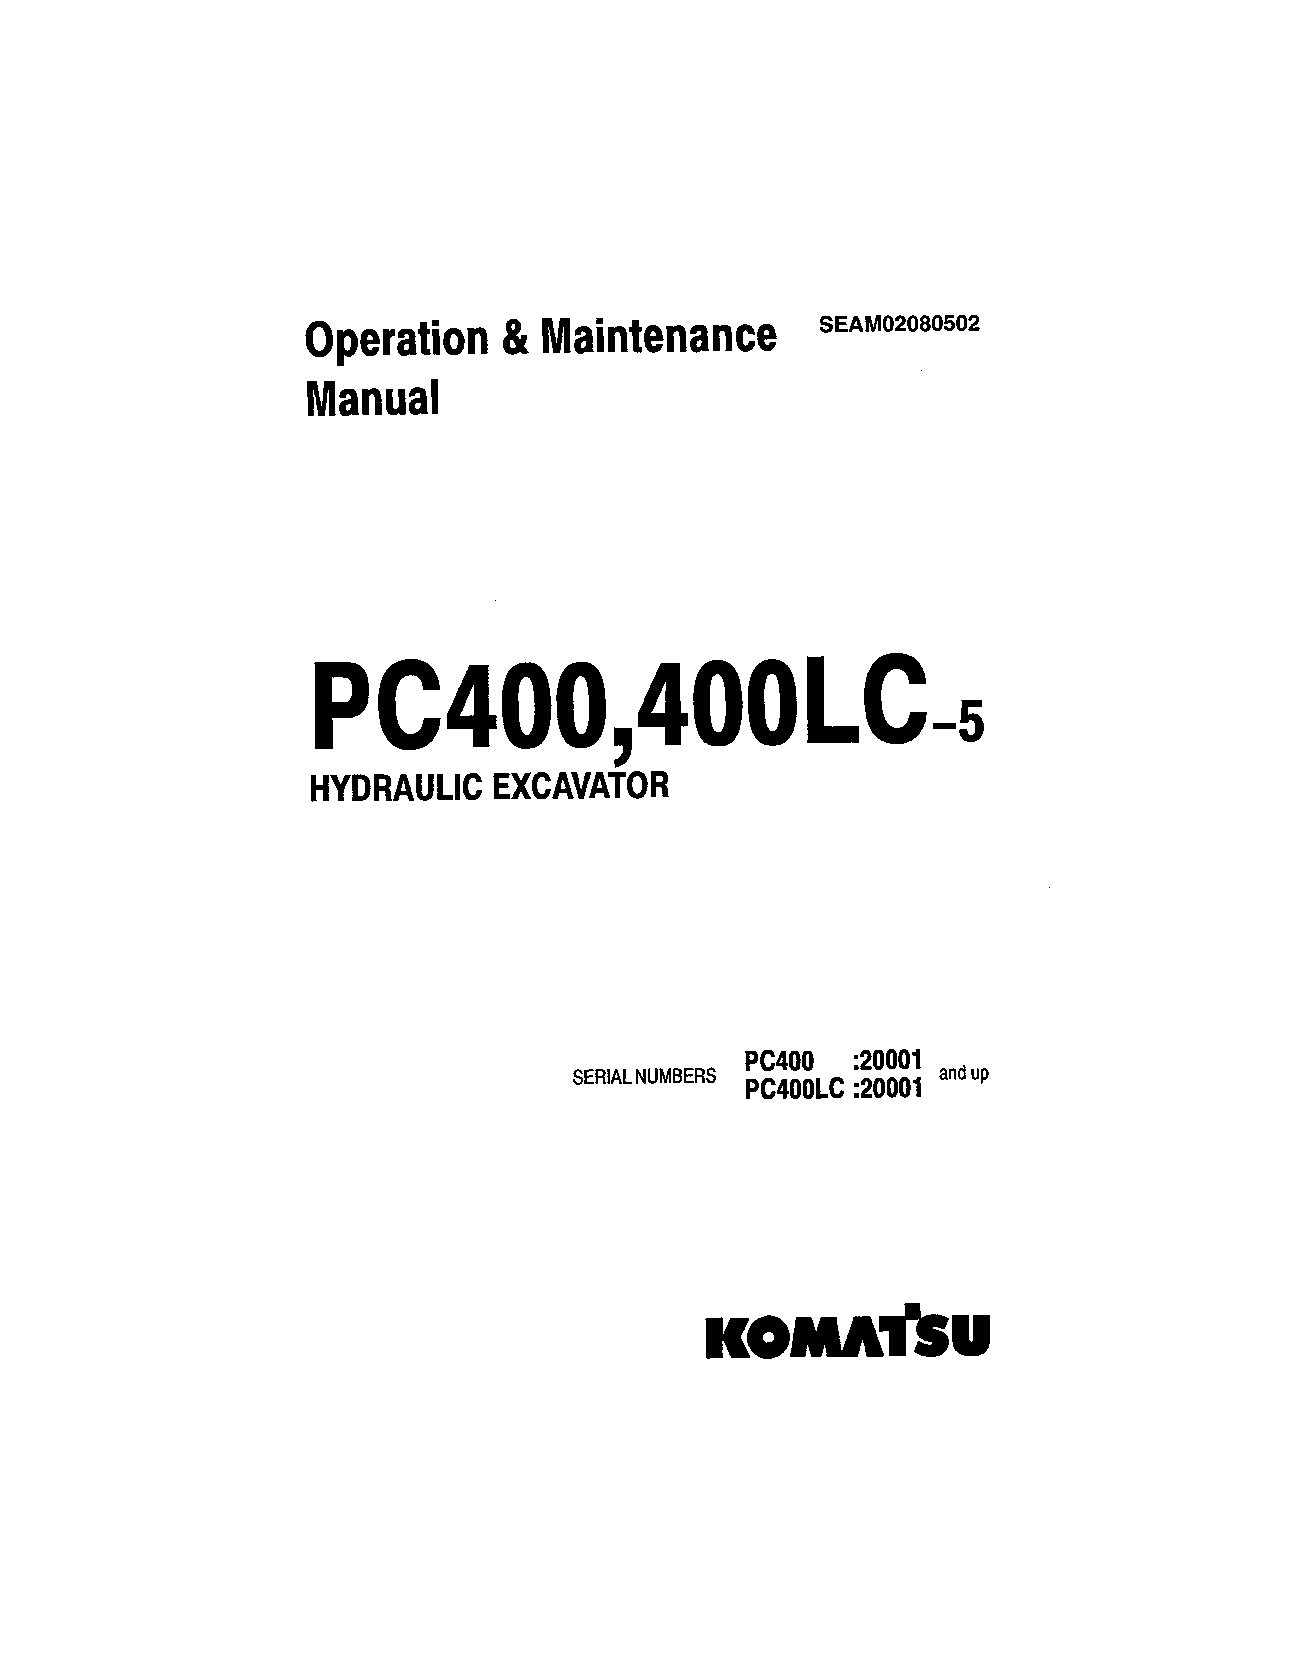 Komatsu PC400LC-5 Operation and Maintenance Manual